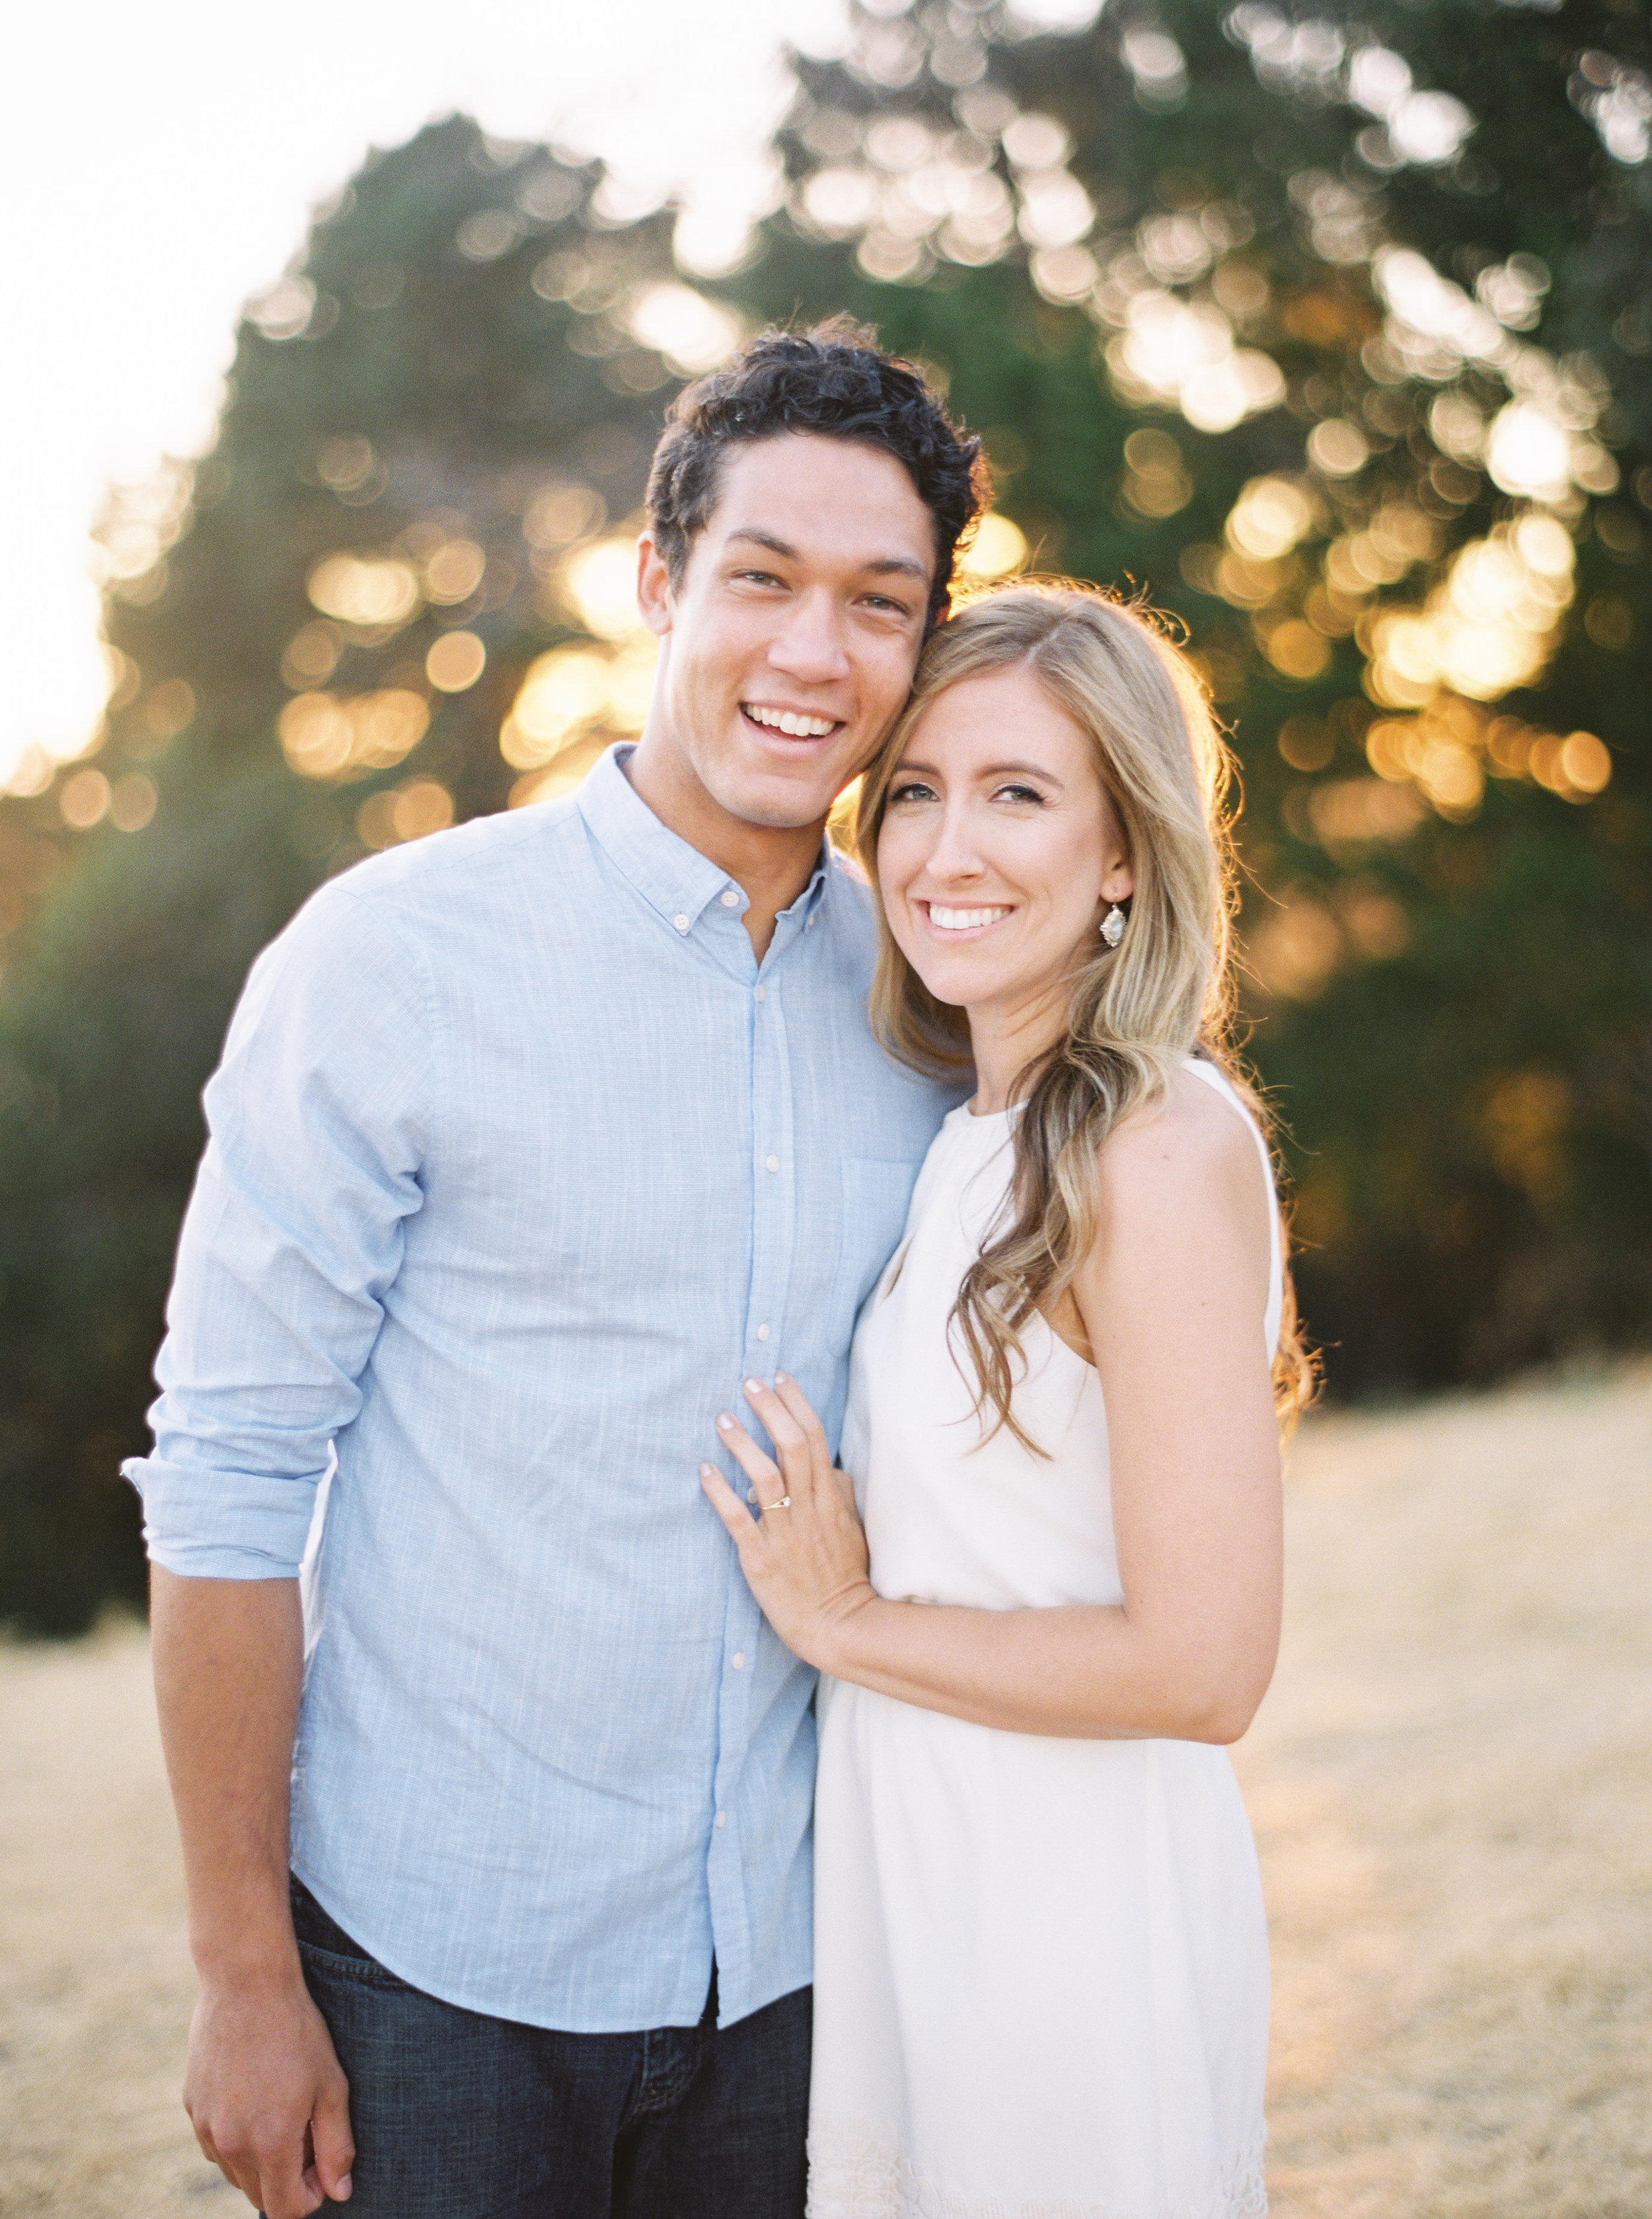 redwood-forest-engagement-in-oakland-california-70.jpg